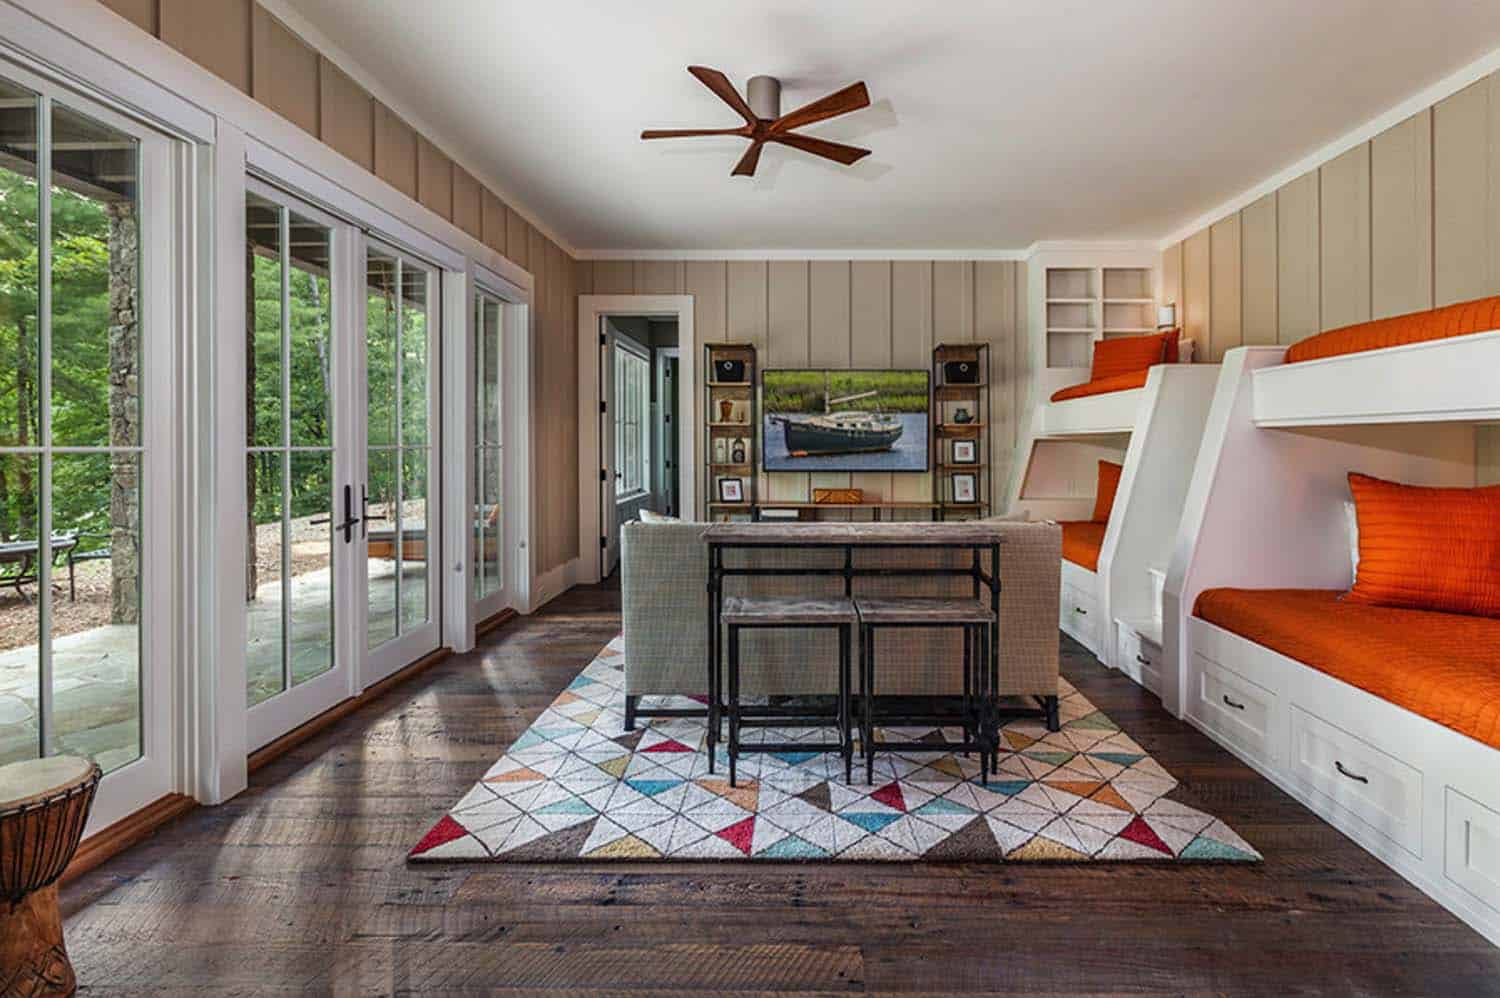 Bright Water Bay Lake House-Wright Design-17-1 Kindesign